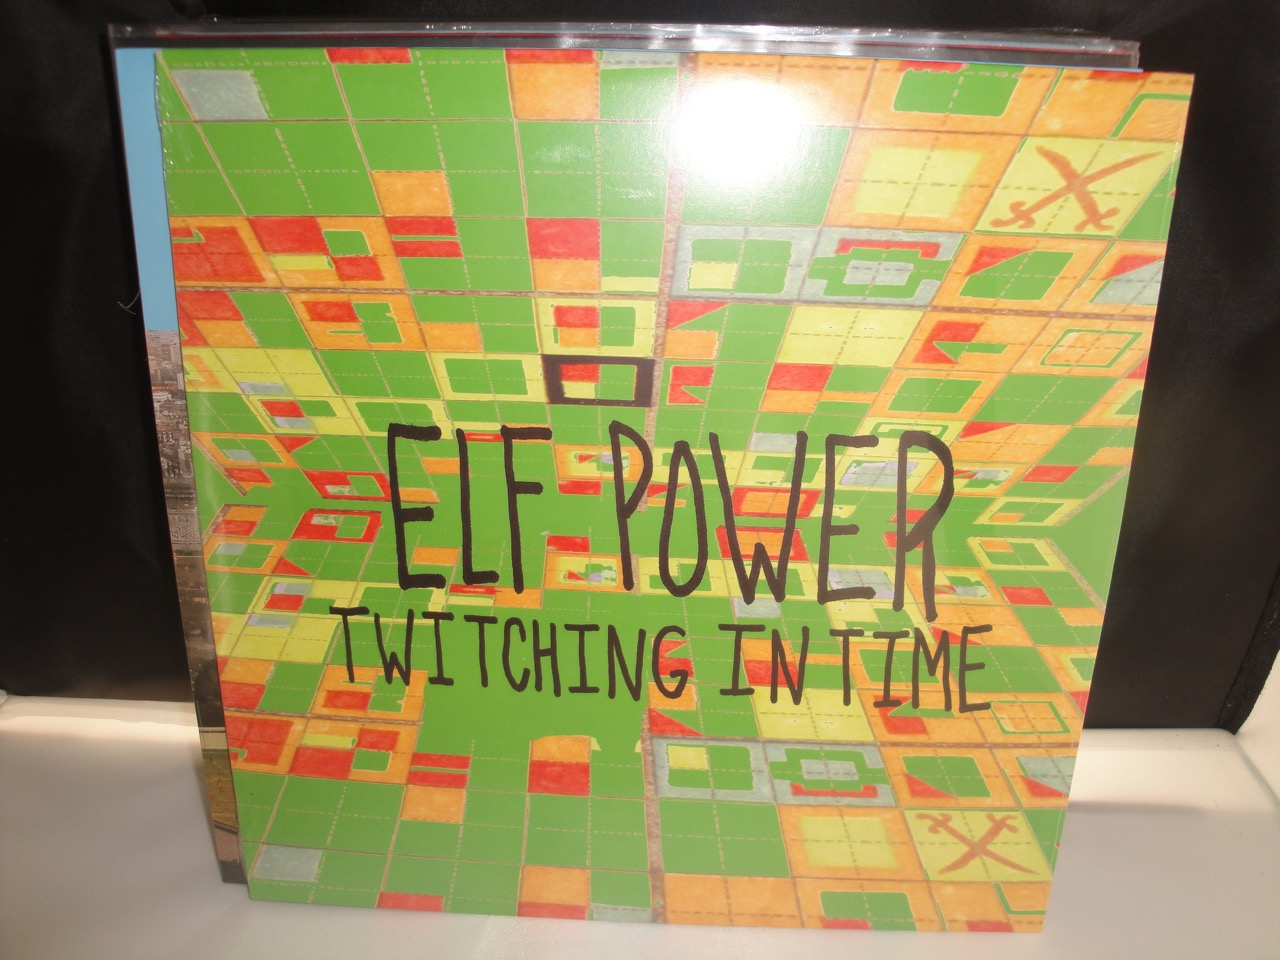 Elf Power - Twitching In Time - 2017 Vinyl LP, Athens, GA